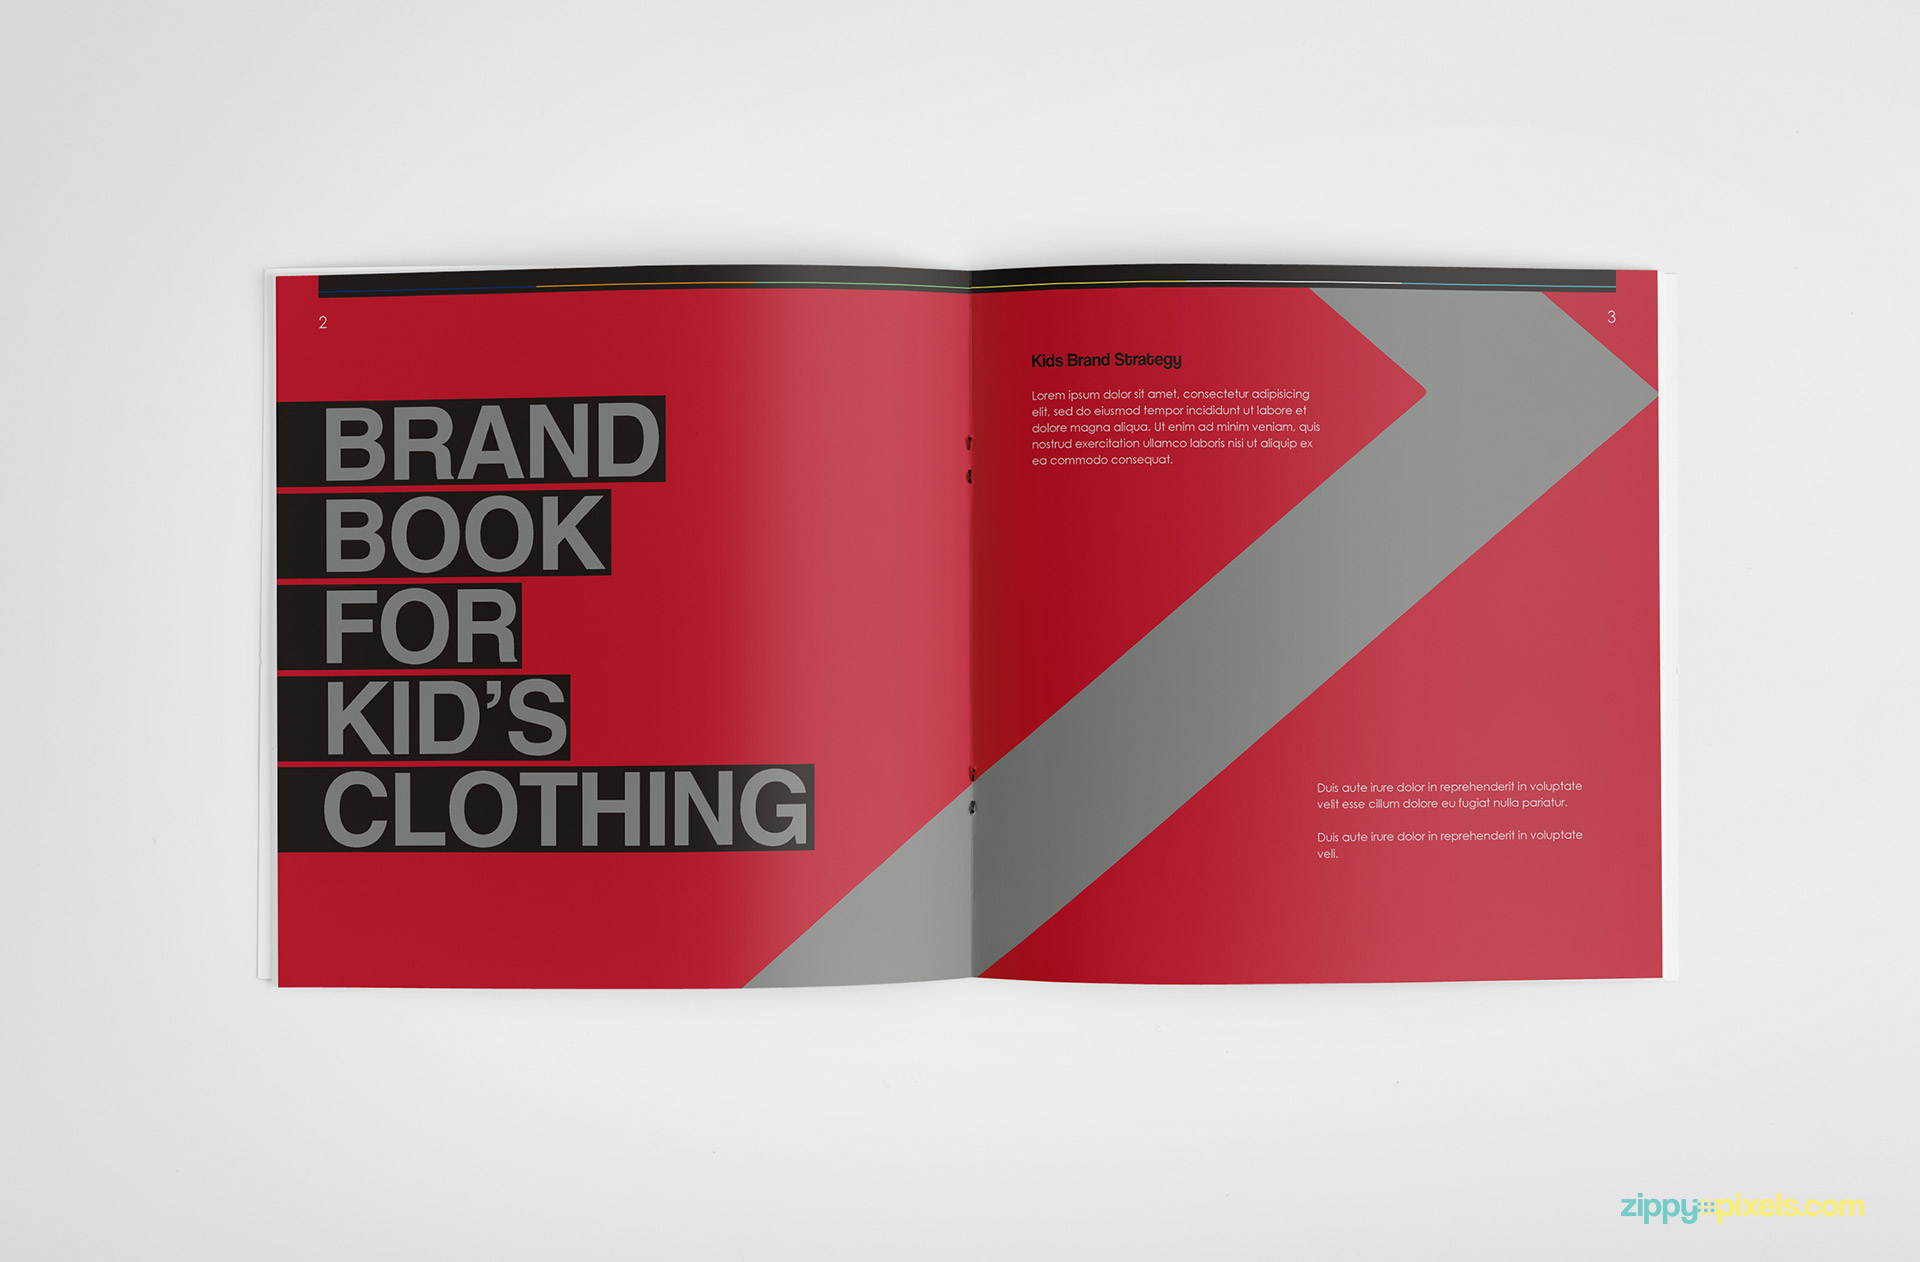 05-brand-book-12-brand-book-for-kids-clothing-kids-brand-strategy